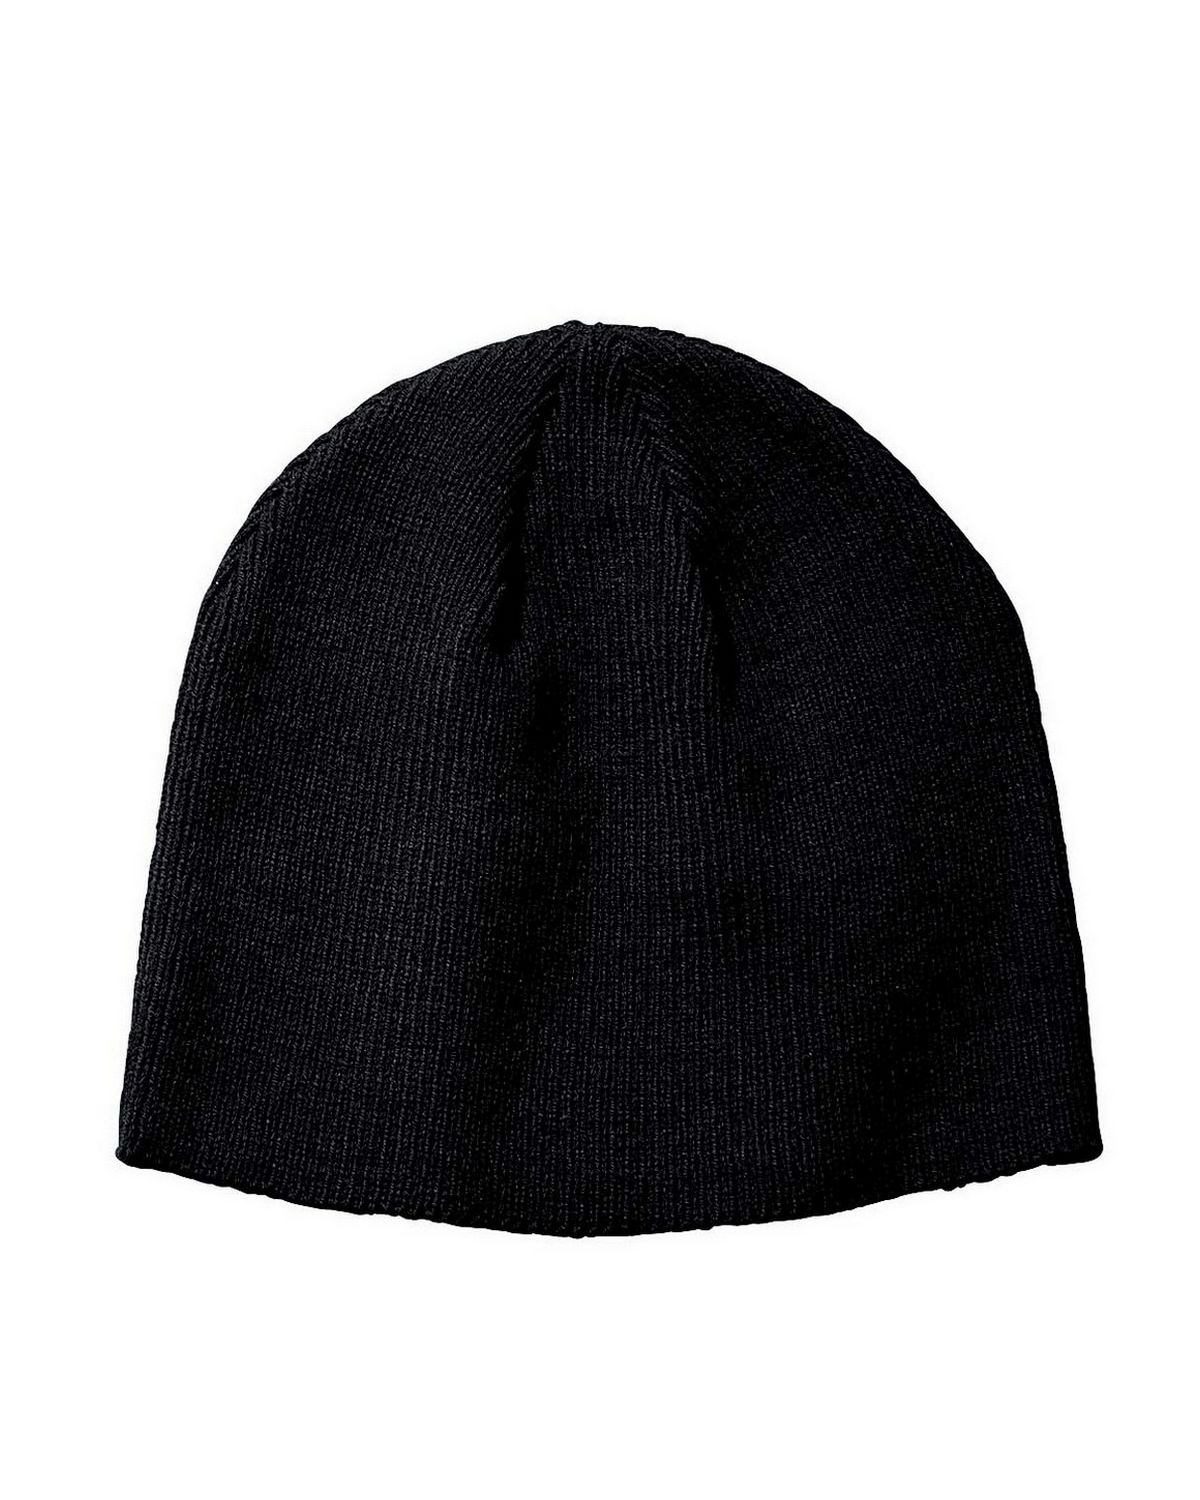 Big Accessories BX026 Knit Beanie - Red - One Size BX026